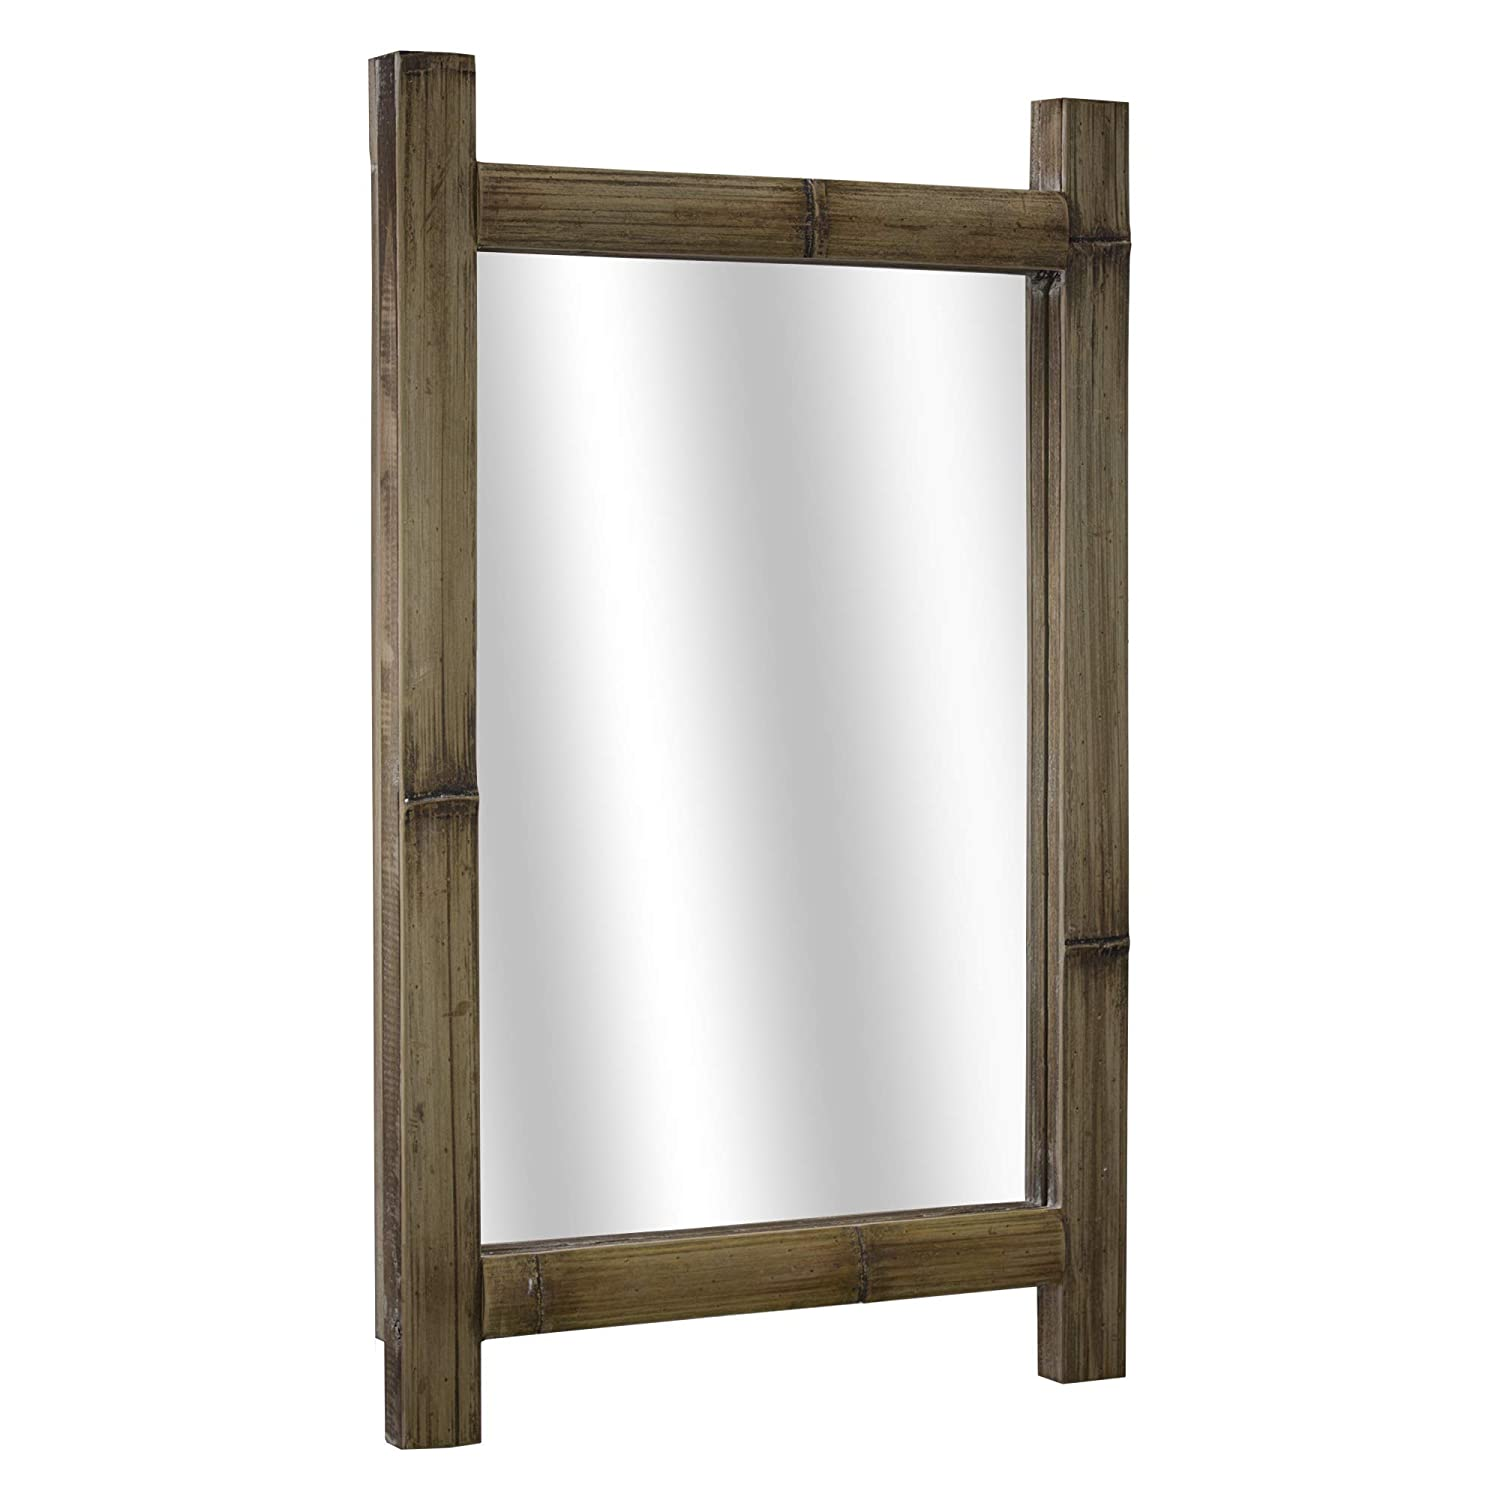 Crystal Art Rustic Bamboo Wood Hanging Wall Vanity Accent Mirror 16.25 L x 26 H Brown